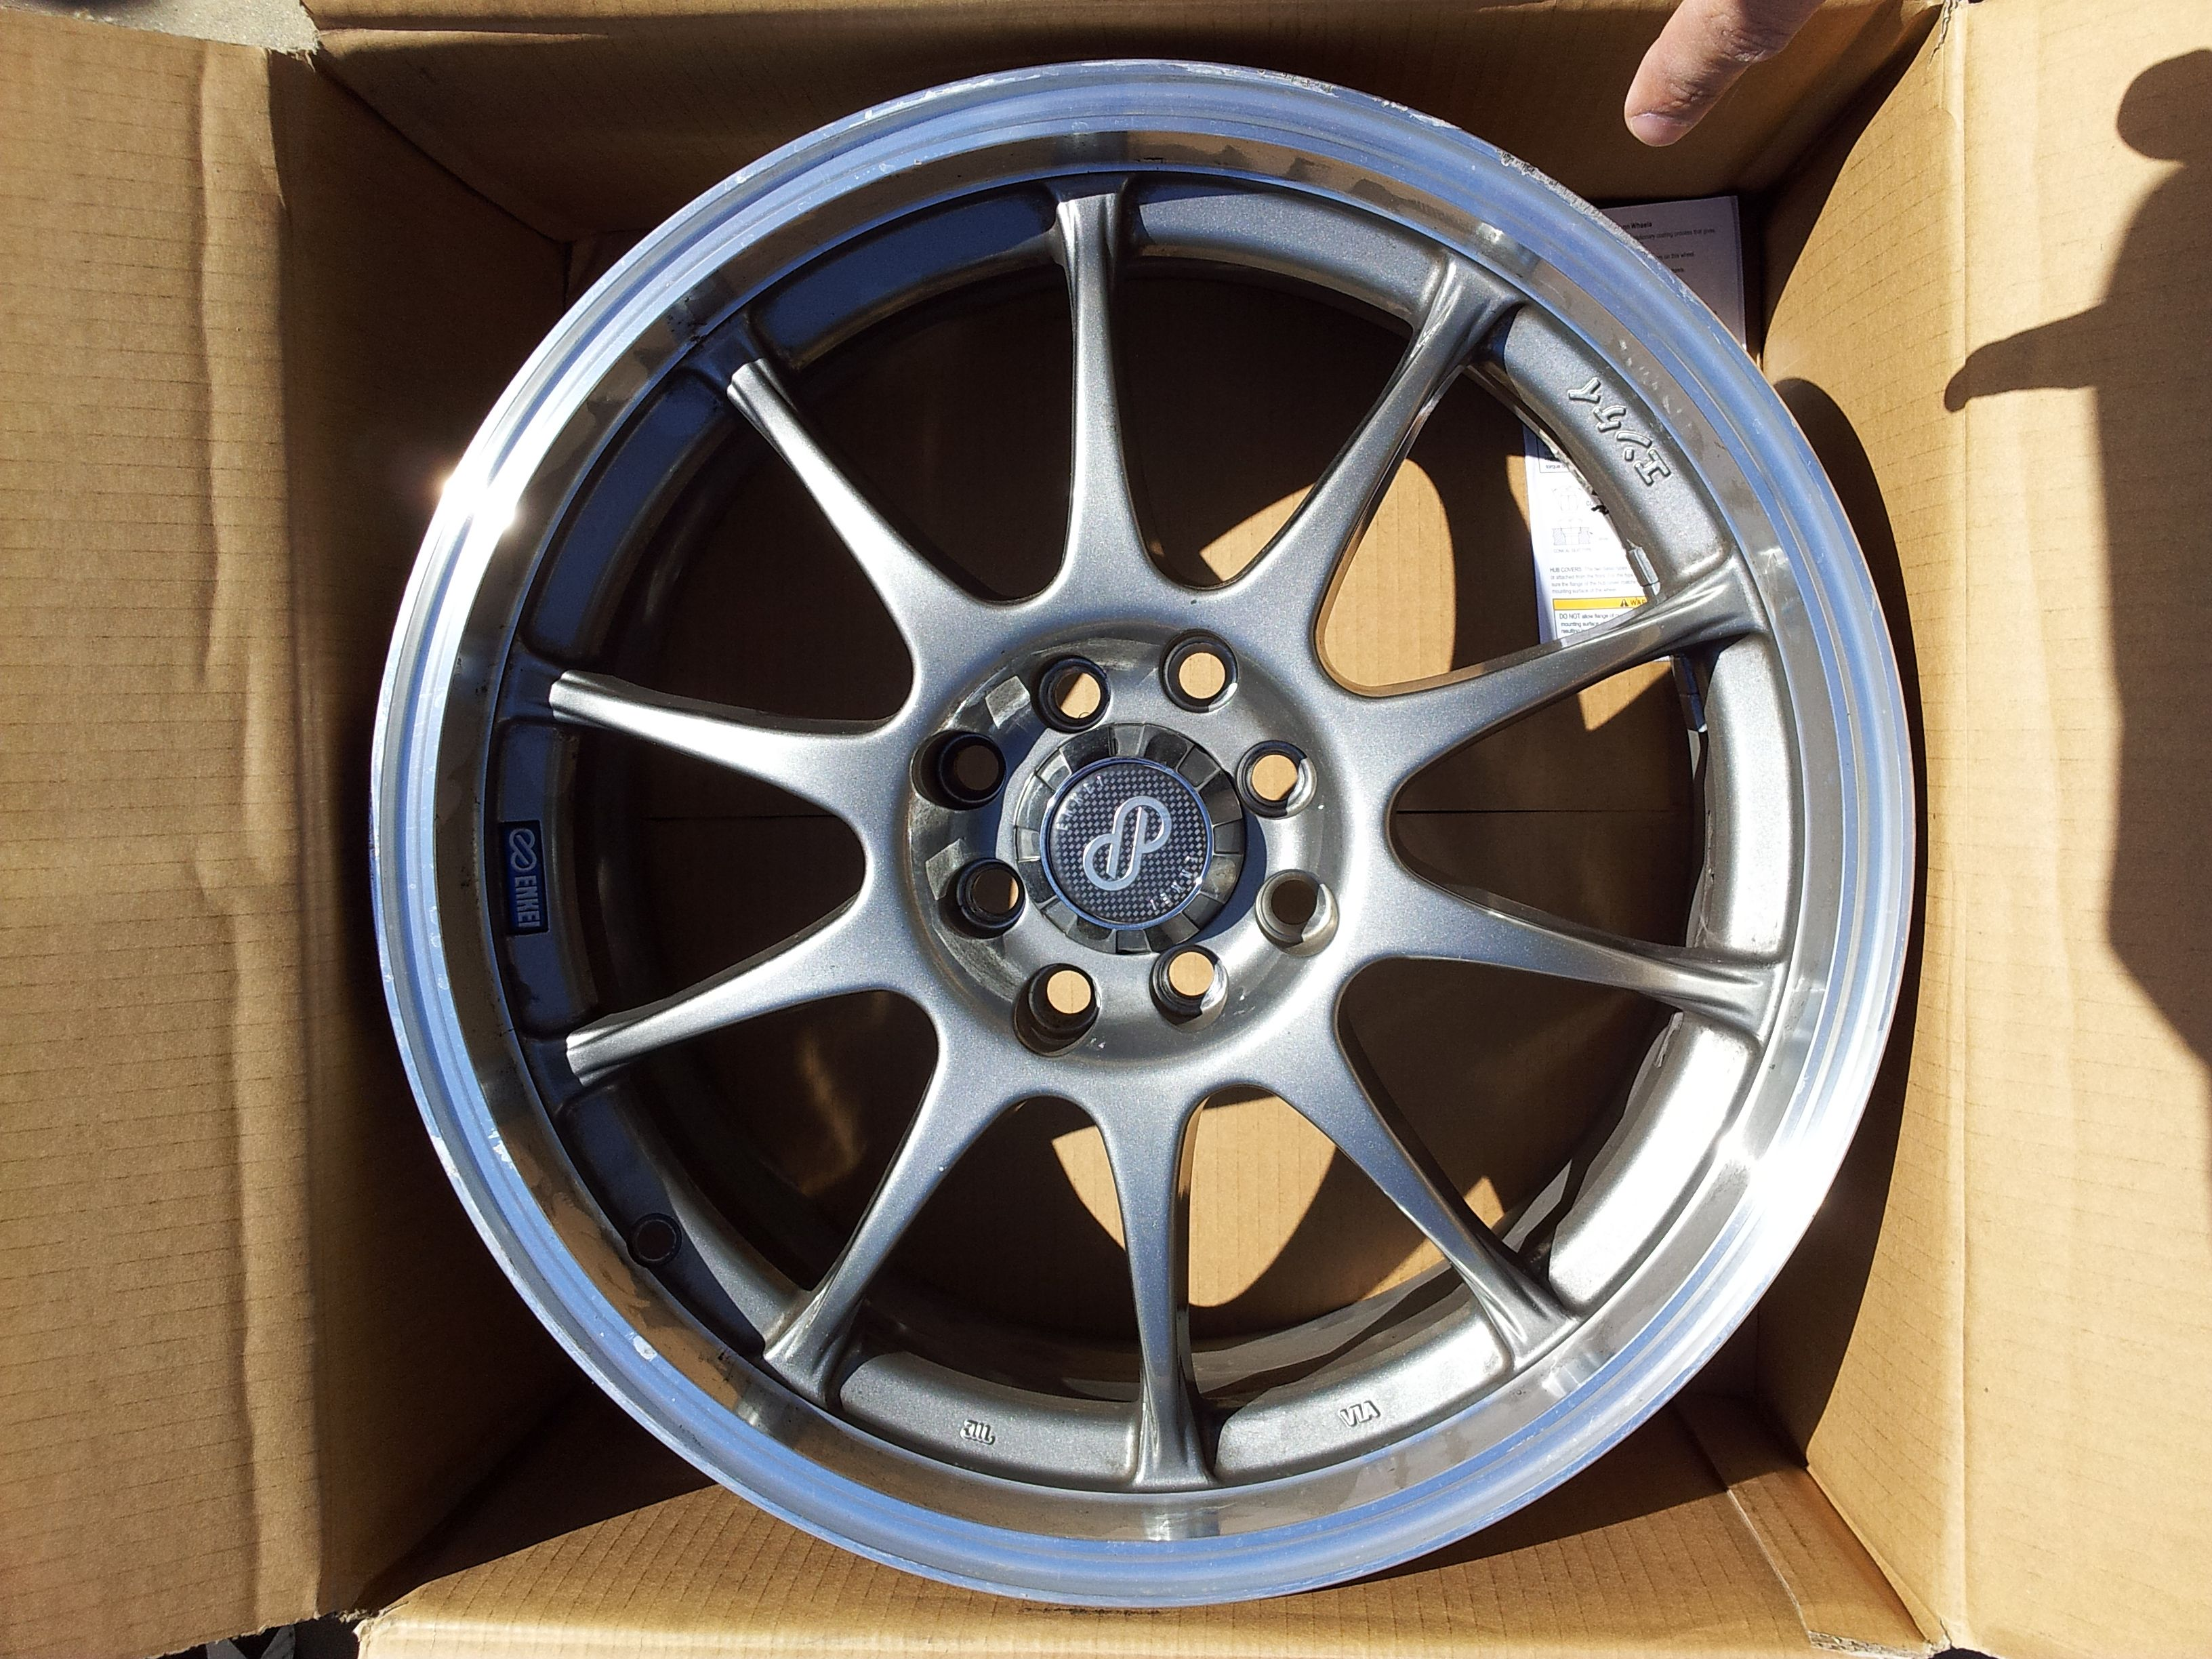 The Car Shack >> FS Socal: 4 Silver Enkei J10 17x7 +42 4x100 and 4 205/40/17 - Unofficial Honda FIT Forums